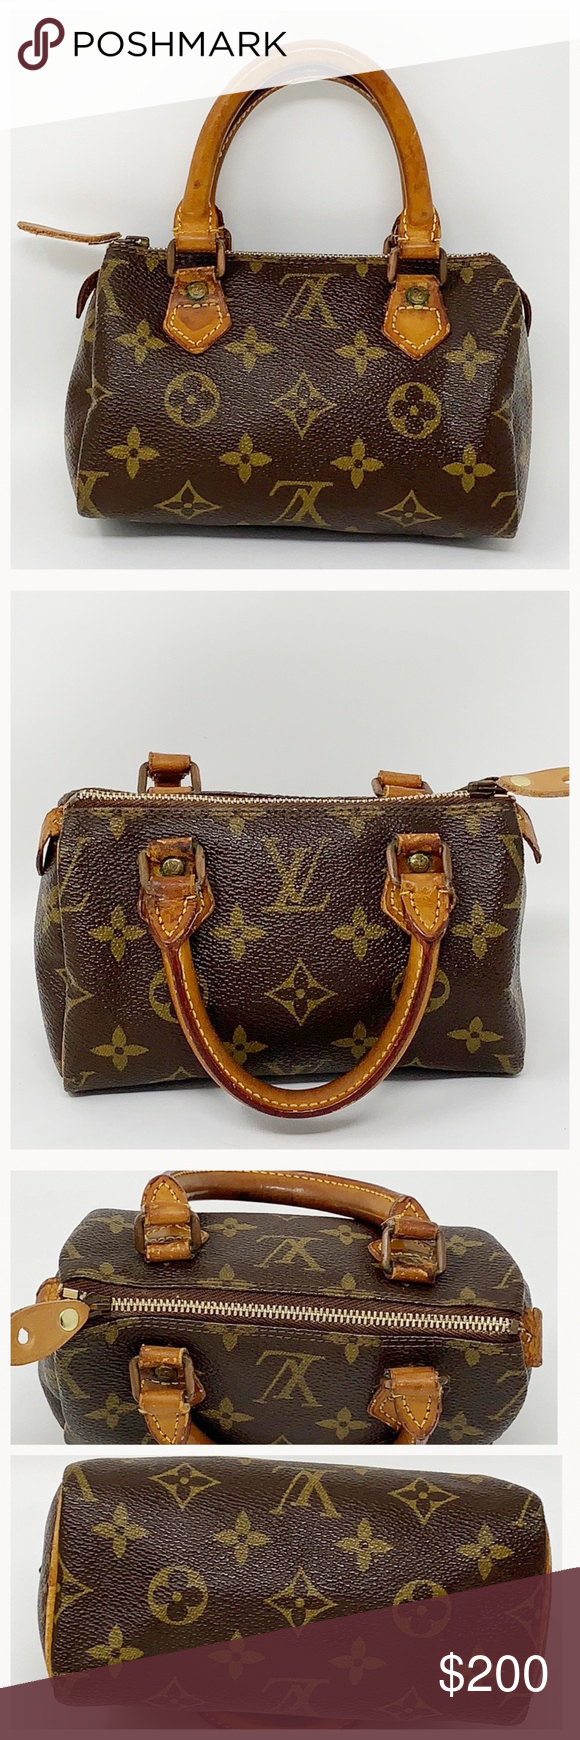 c774579e5dc9 Authentic Louis Vuitton Speedy Mini Satchel 100% Authenticity Guaranteed  Made in France Date code